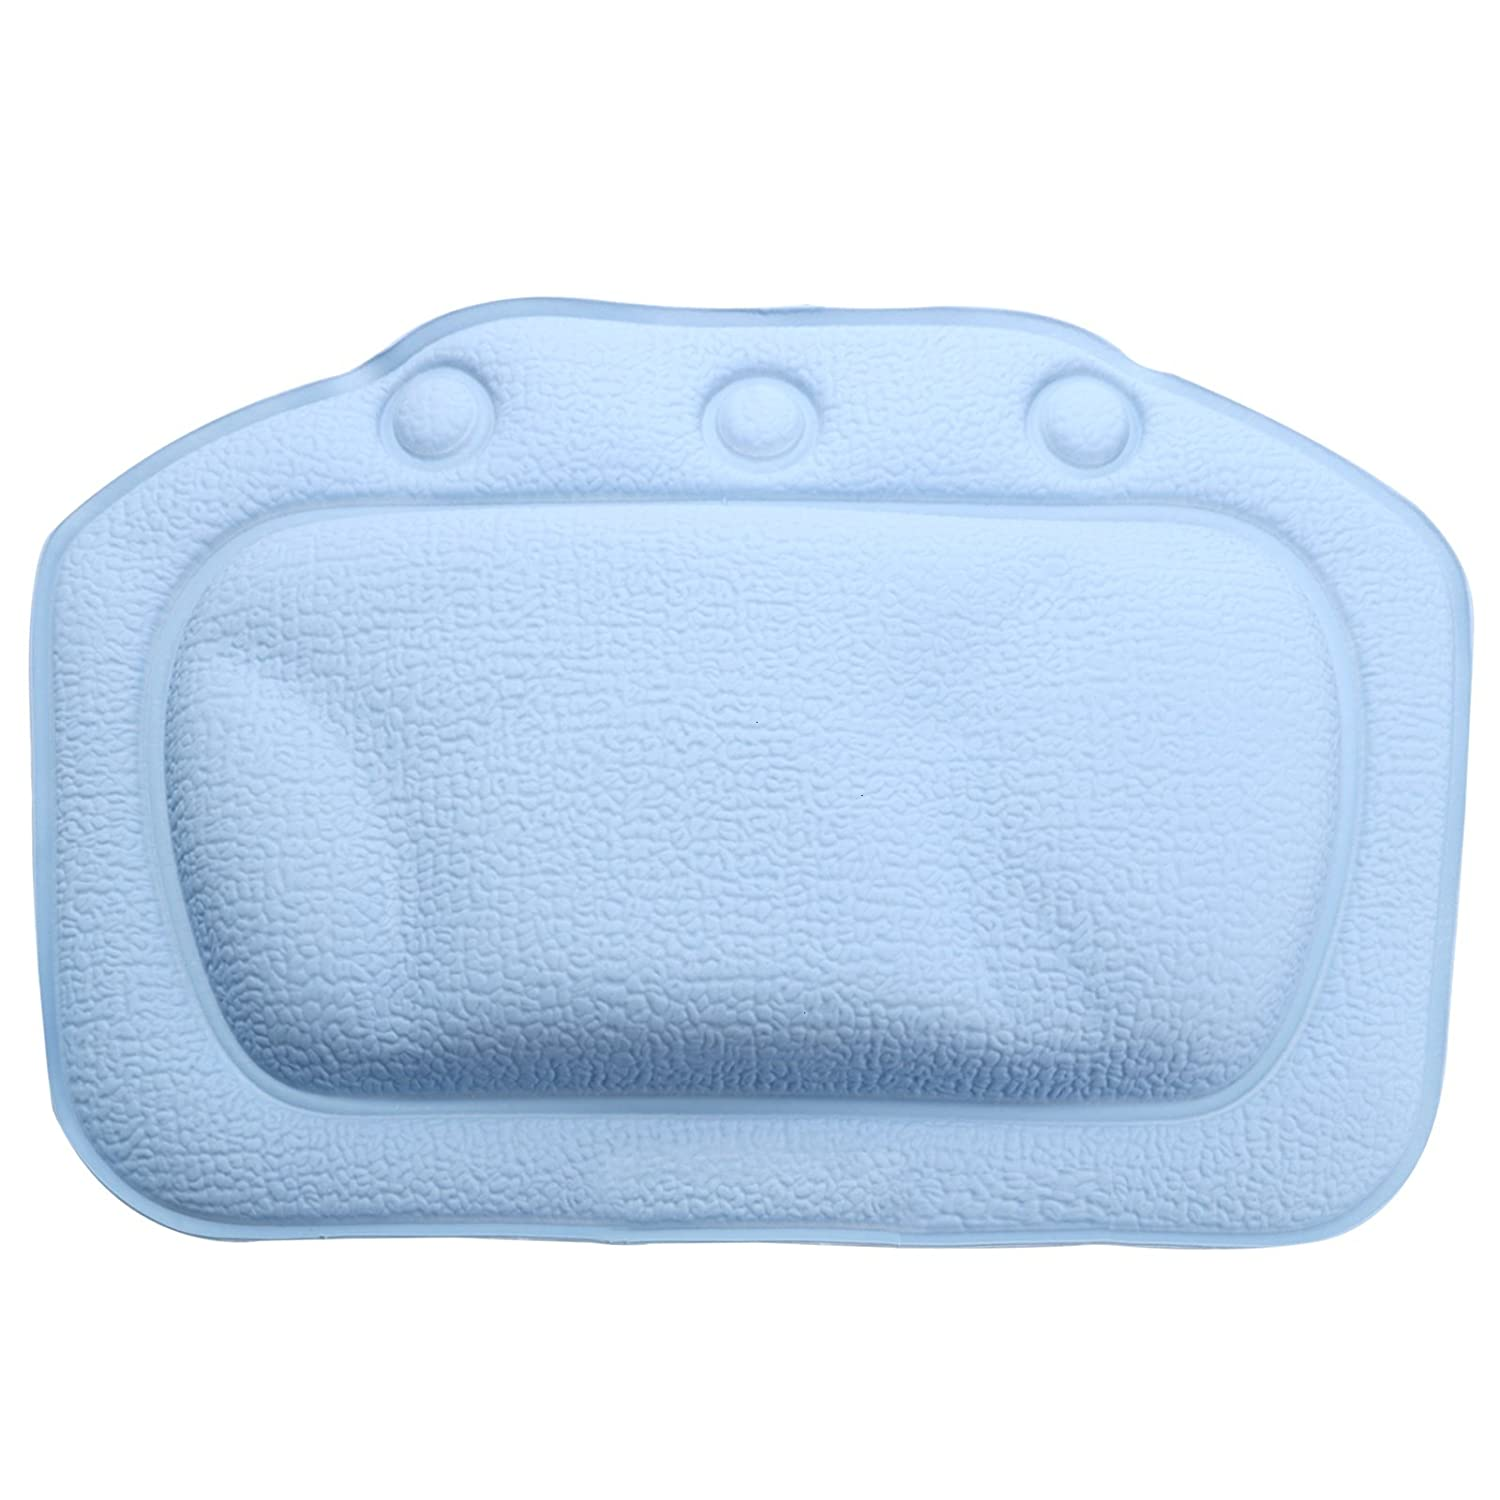 Feeko Bathtub Pillow, Bath Spa Relaxing Cushion Pillow with Suction Cups Blue